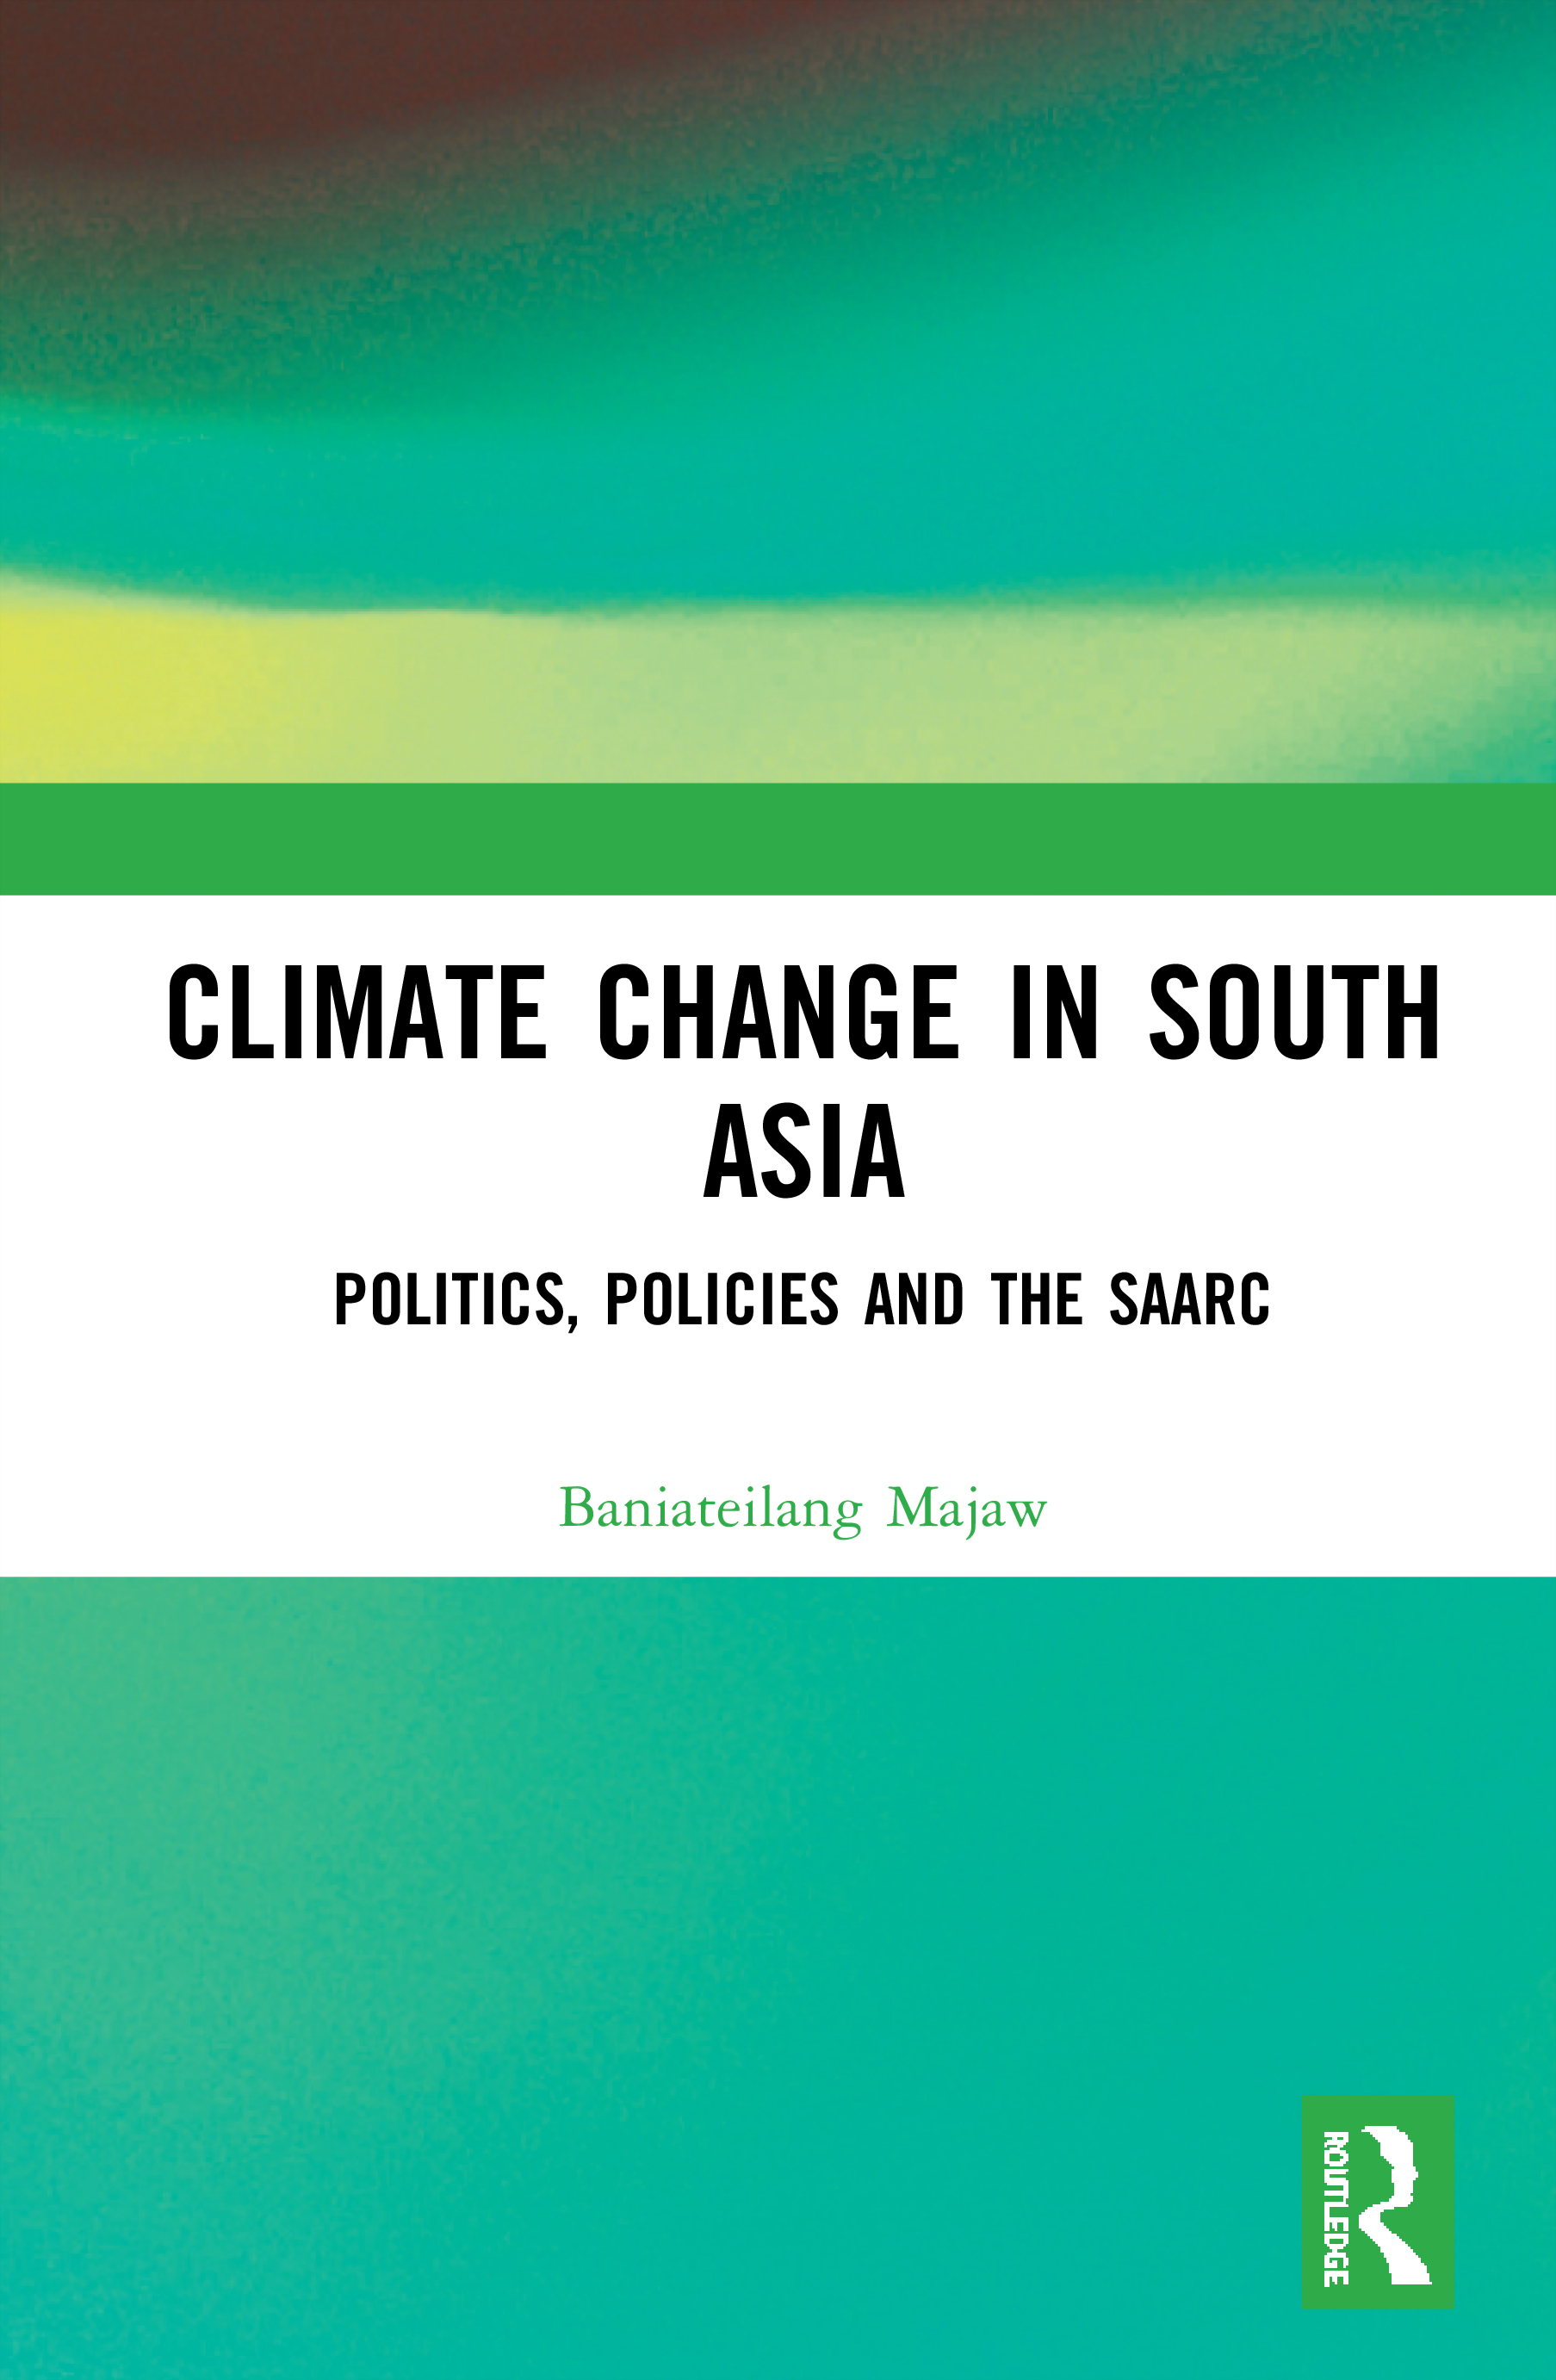 Climate Change in South Asia: Politics, Policies and the SAARC book cover